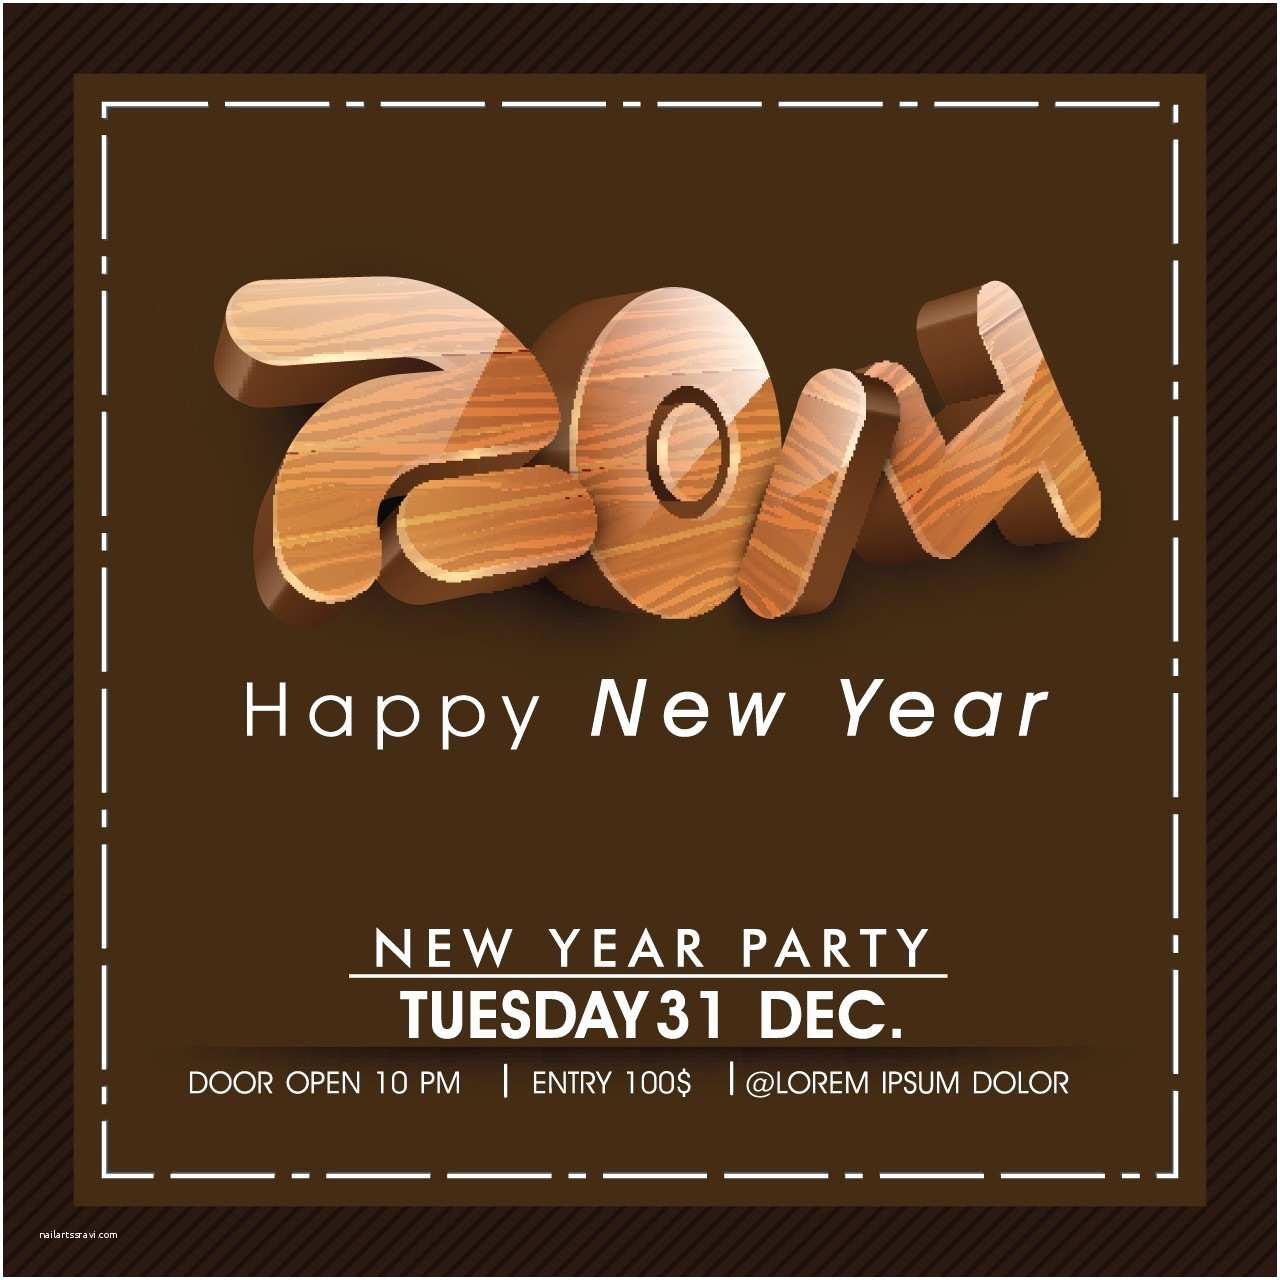 New Years Party Invitations 2014 New Year S Eve Party Invitations Cards • Elsoar